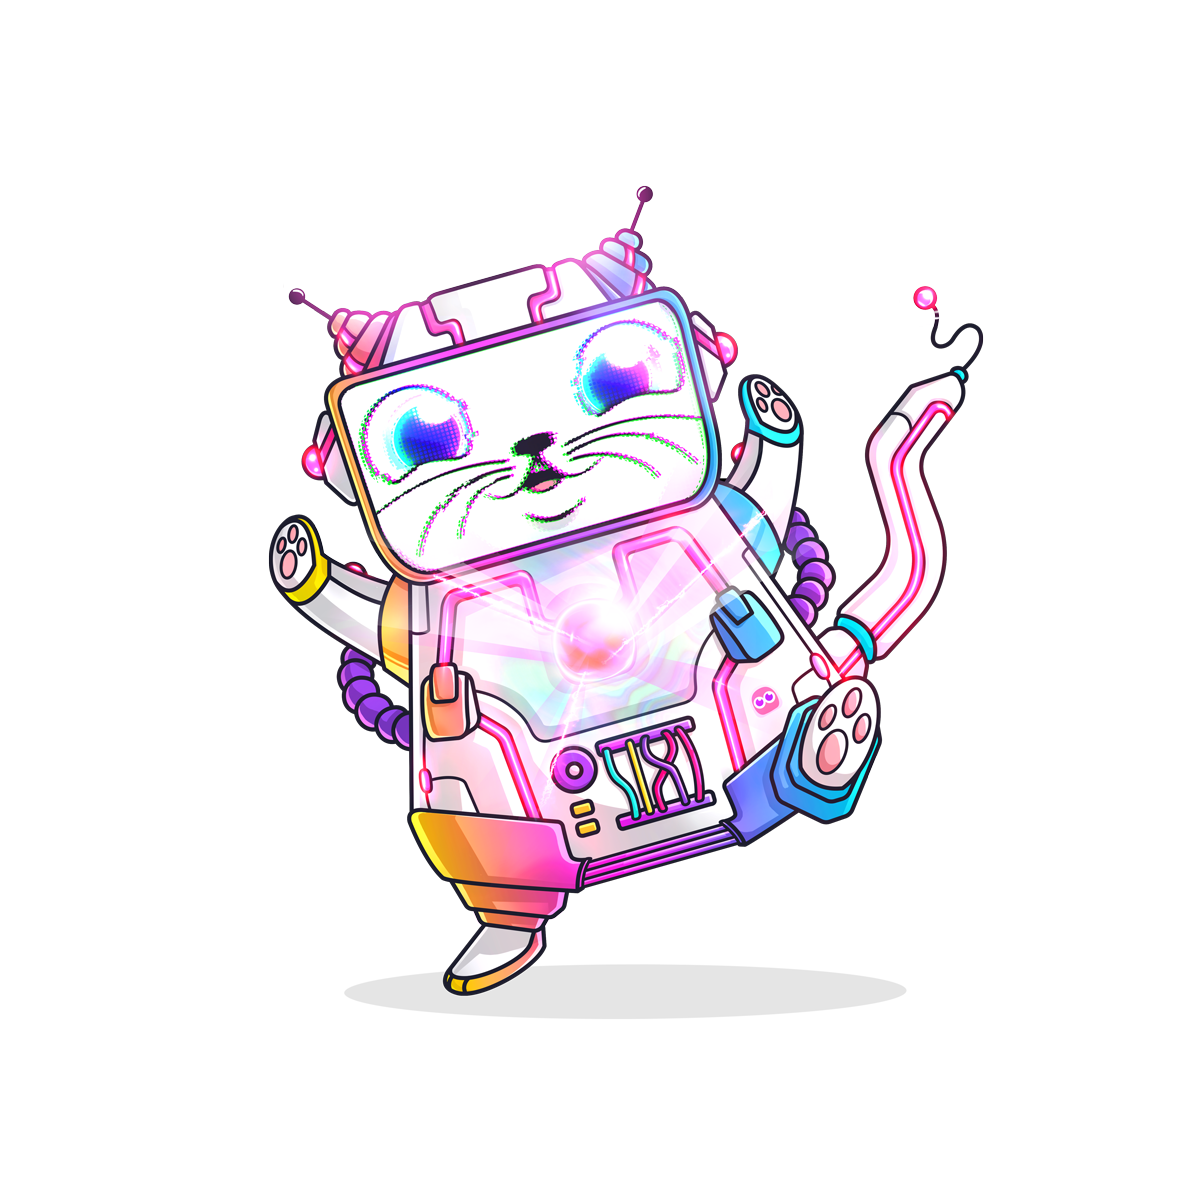 cryptokitty #1850